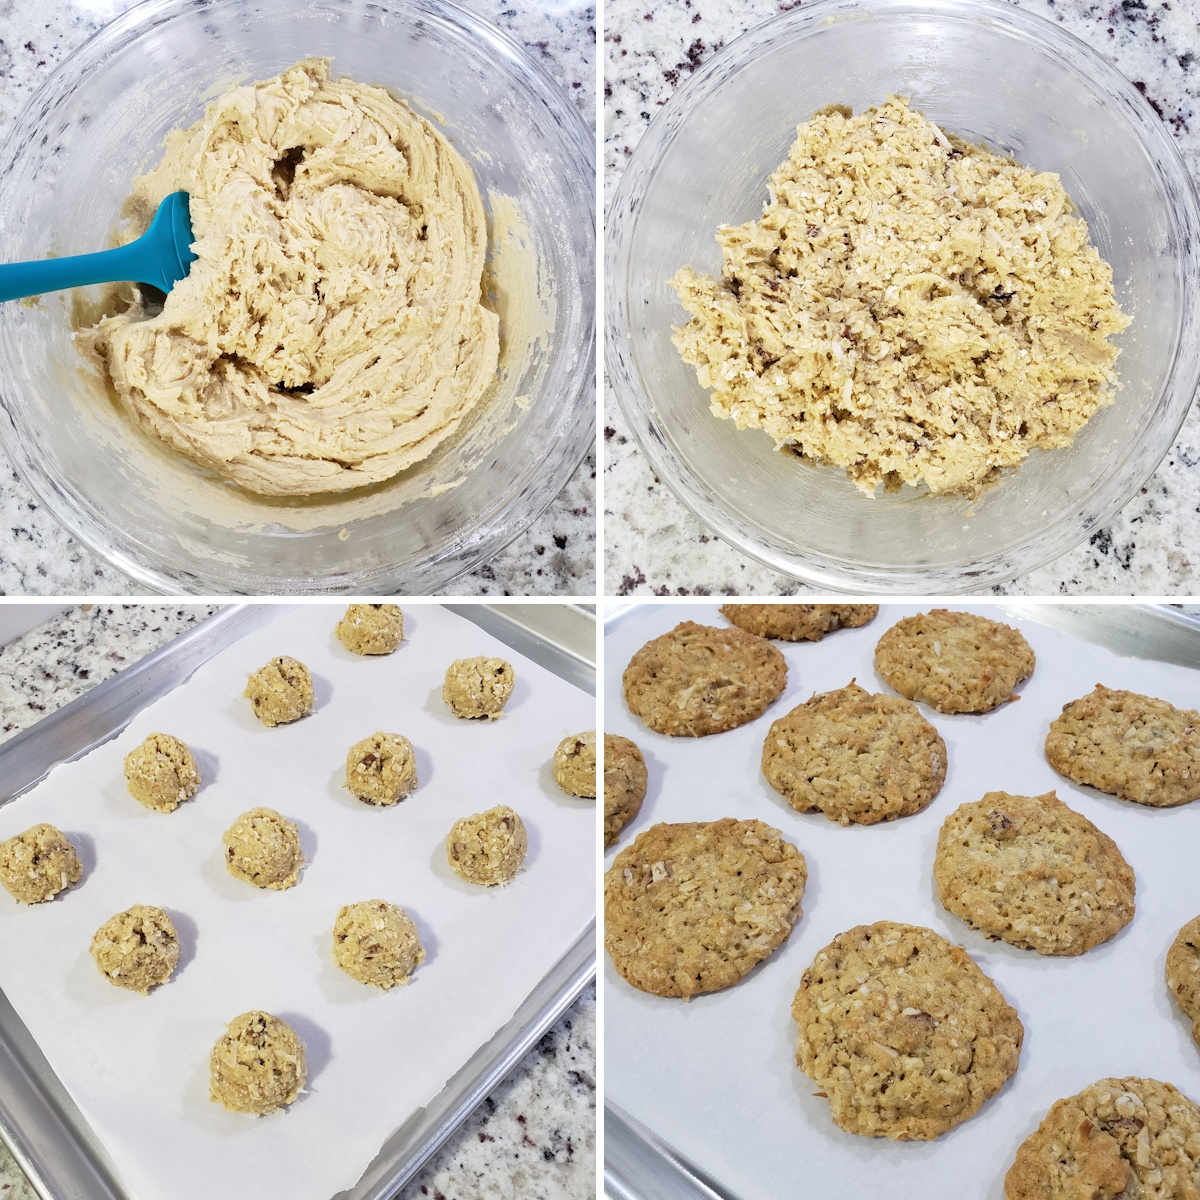 Mixing cookie dough and scooping onto a baking sheet.